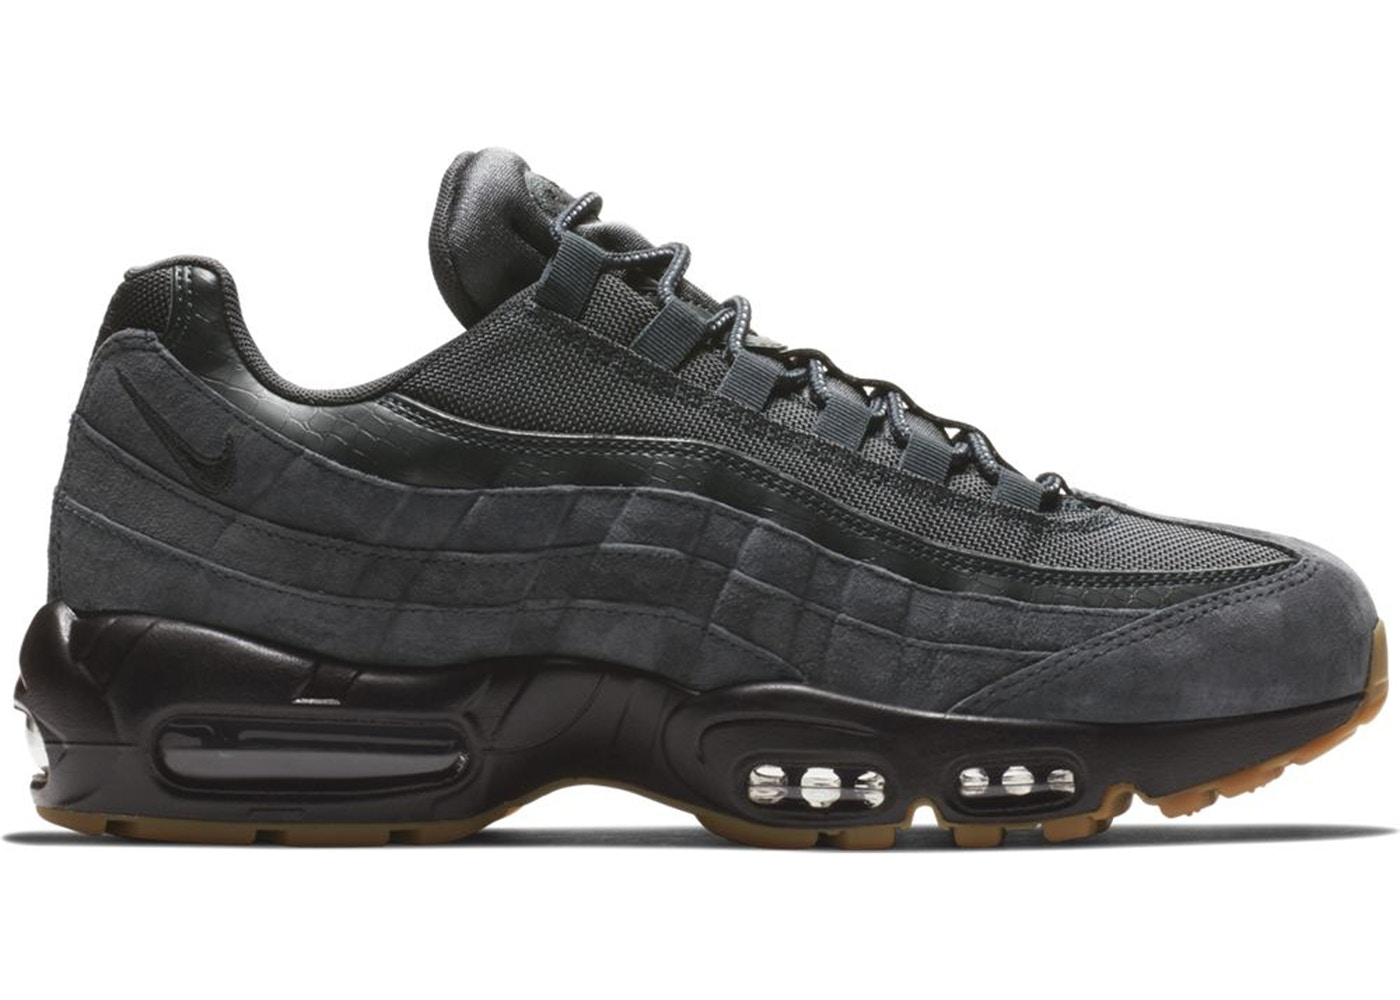 a6b5ec39e2 Sell. or Ask. Size: 11.5. View All Bids. Air Max 95 Anthracite Black Gum